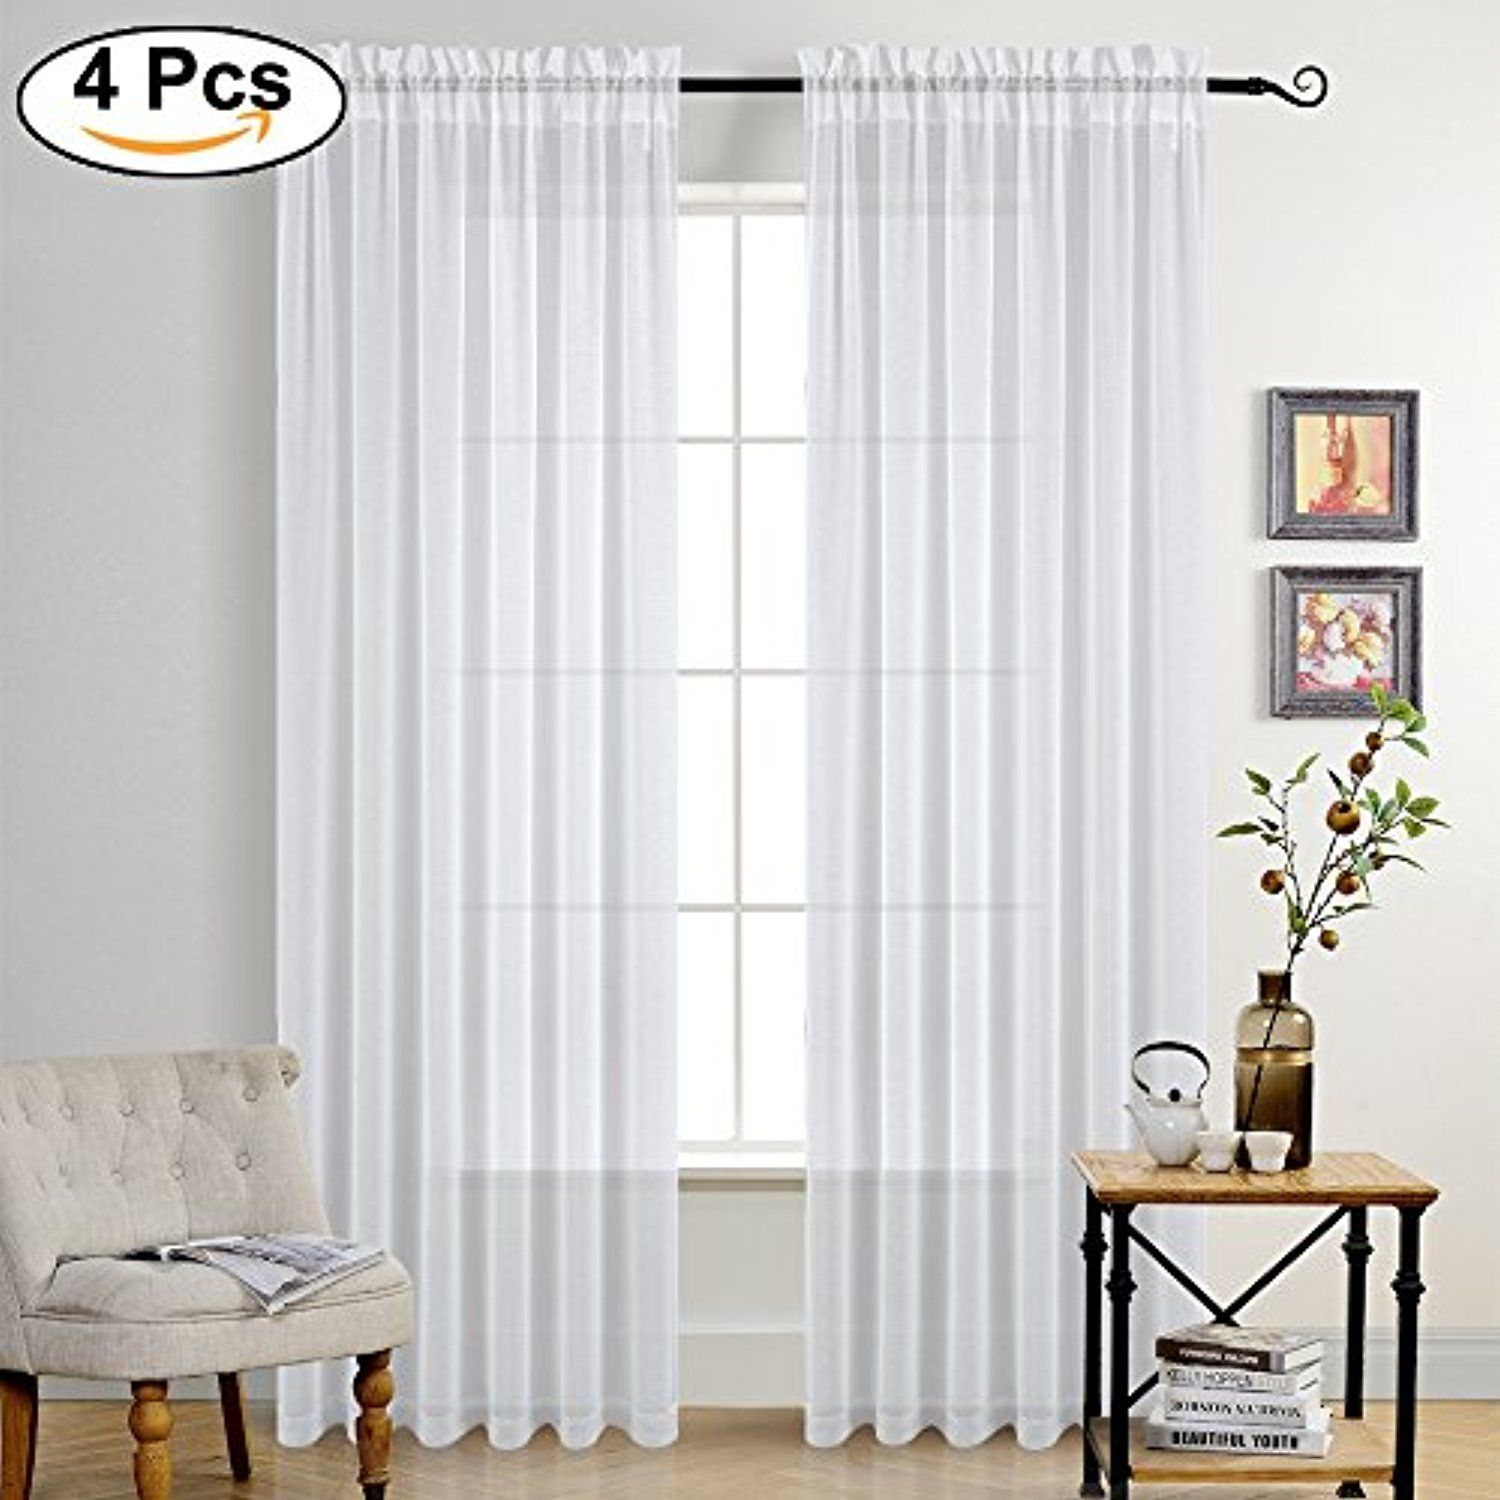 95 Inches Linen Look Sheer Curtains Rod Pocket Design Thick Semi